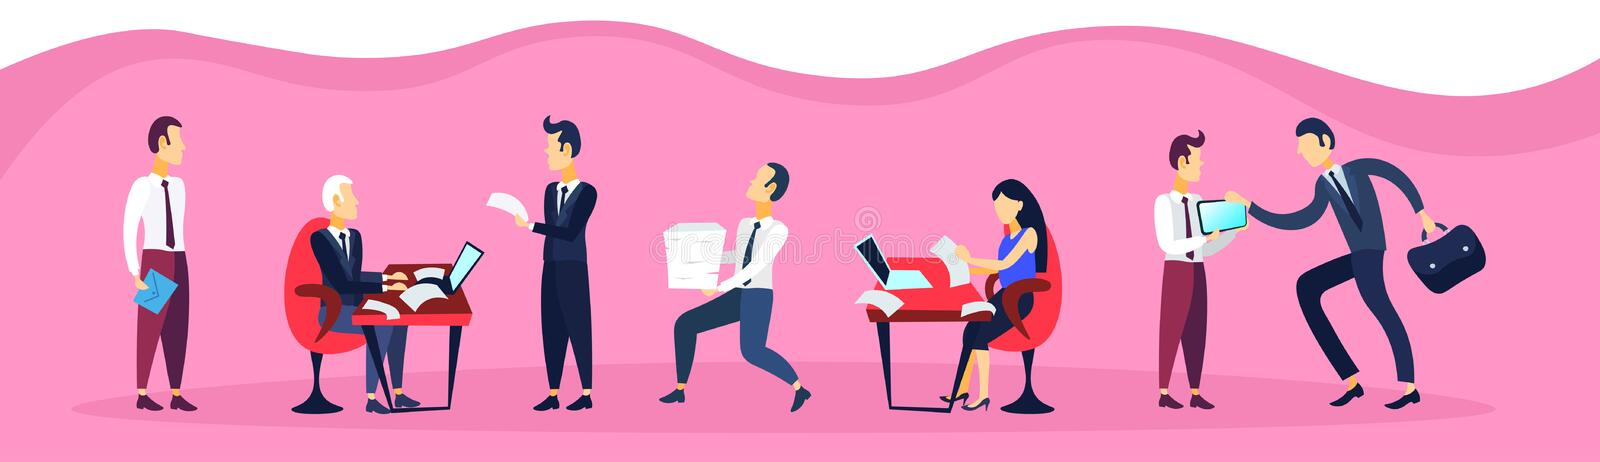 Business man woman sitting office workplace using laptop communication business interview concept cartoon character flat. Horizontal banner vector illustration royalty free illustration